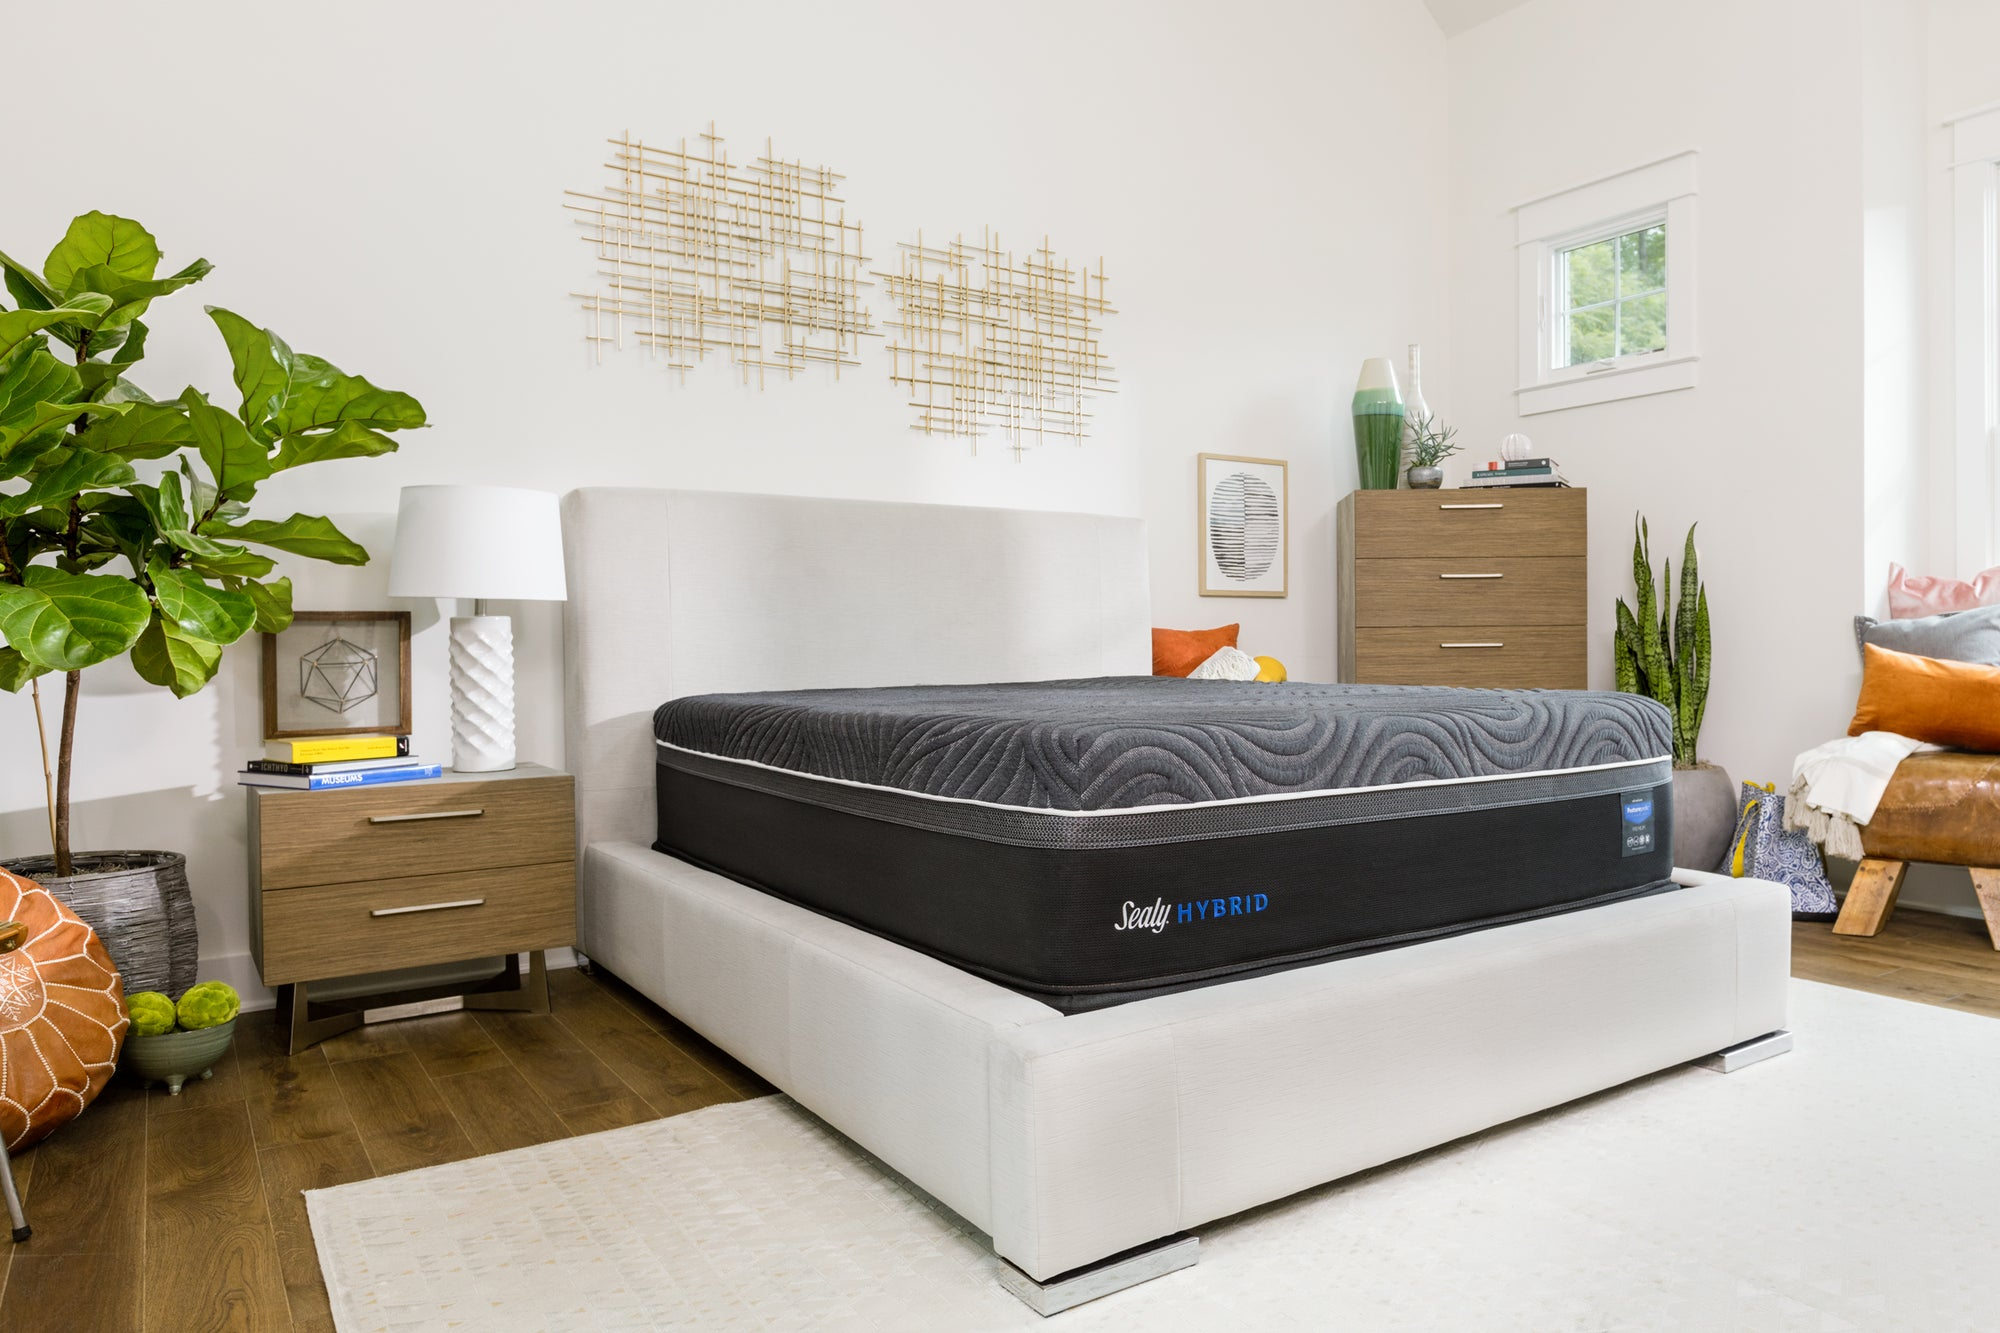 Sealy queen mattress bedroom lifestyle